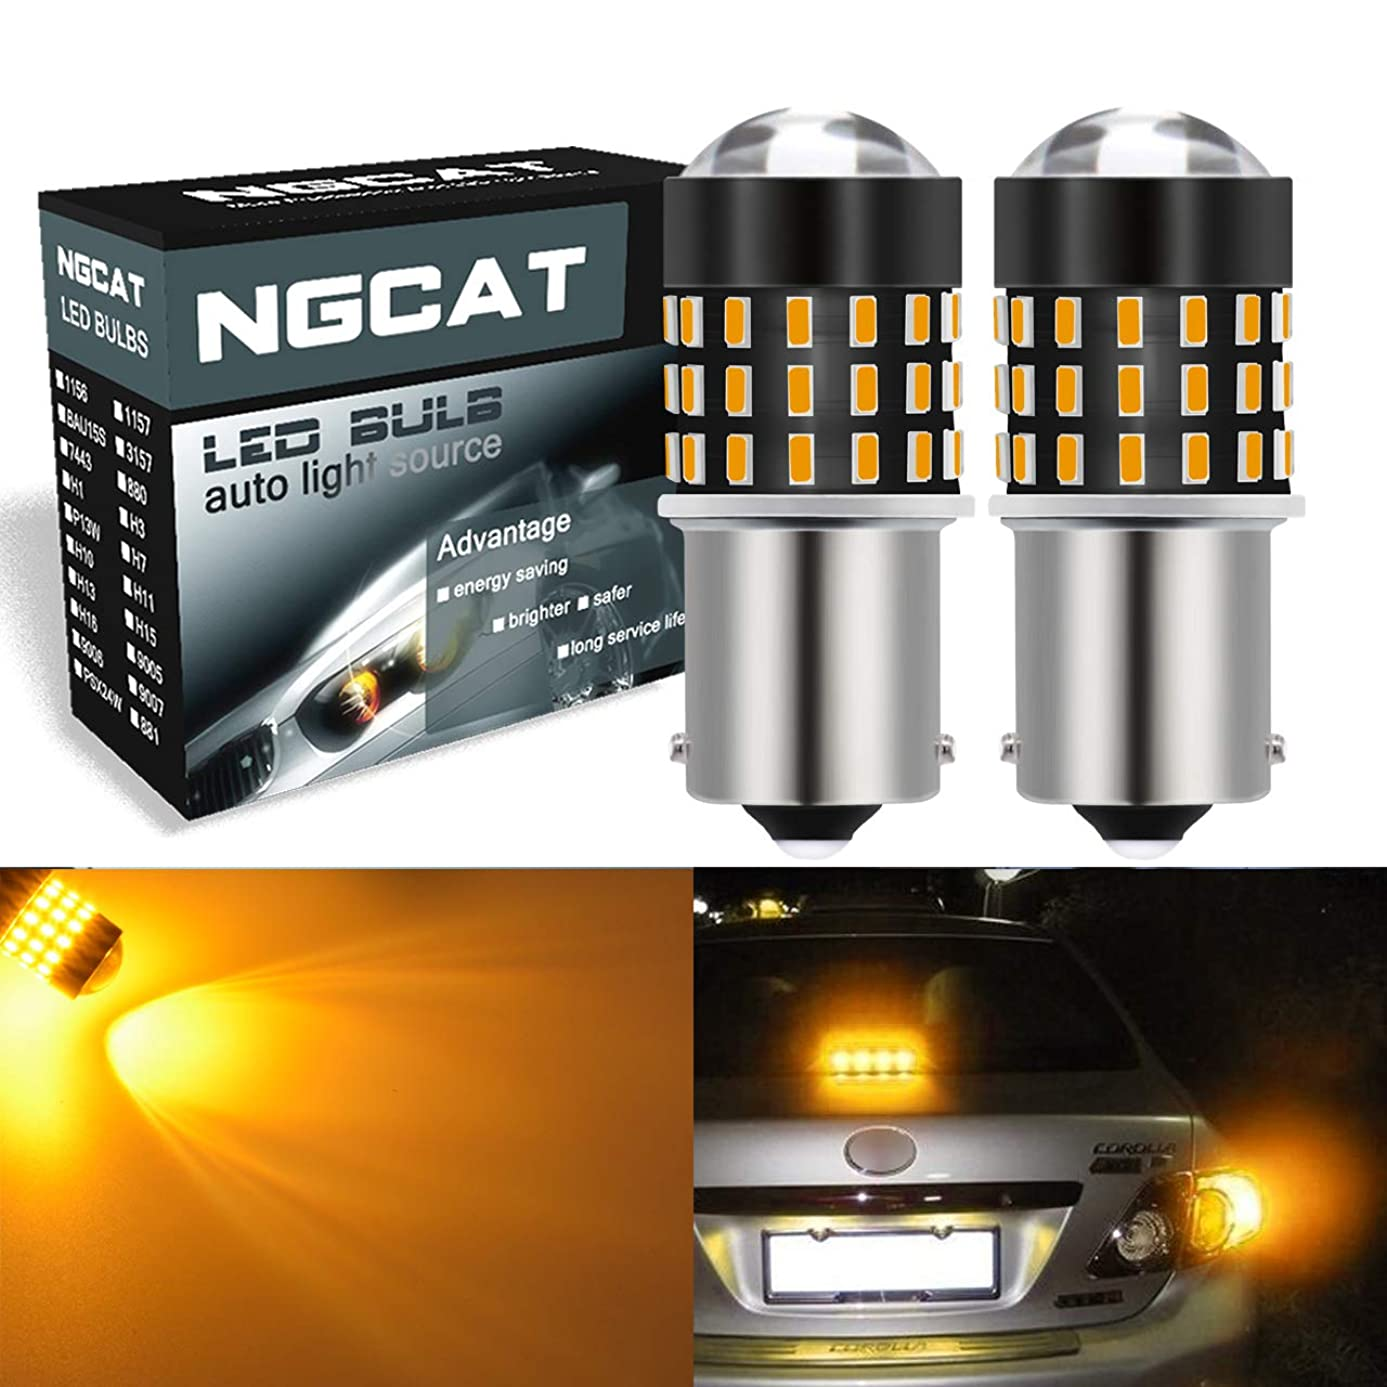 NATGIC 1156 BA15S 1095 7506 LED Bulbs Extremely Bright 3014SMD 54-EX Chipsets with Lens Projector for Turn Signal Lights, Tail Backup Reverse Lights,Amber 12-24V(2-Pack)